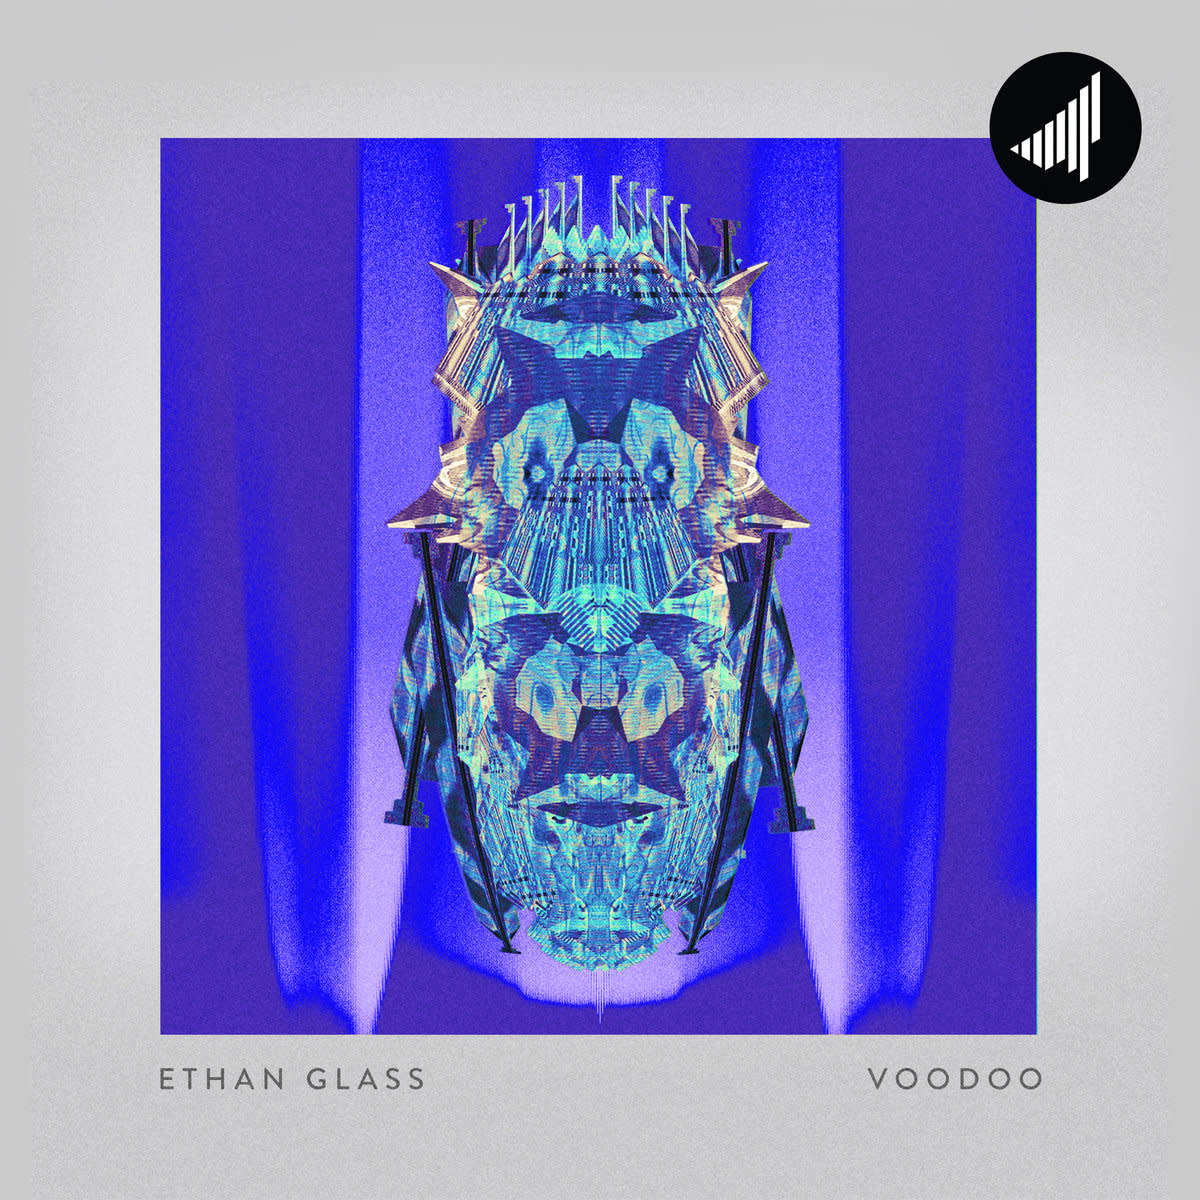 Ethan Glass - Voodoo EP on Saturate Records